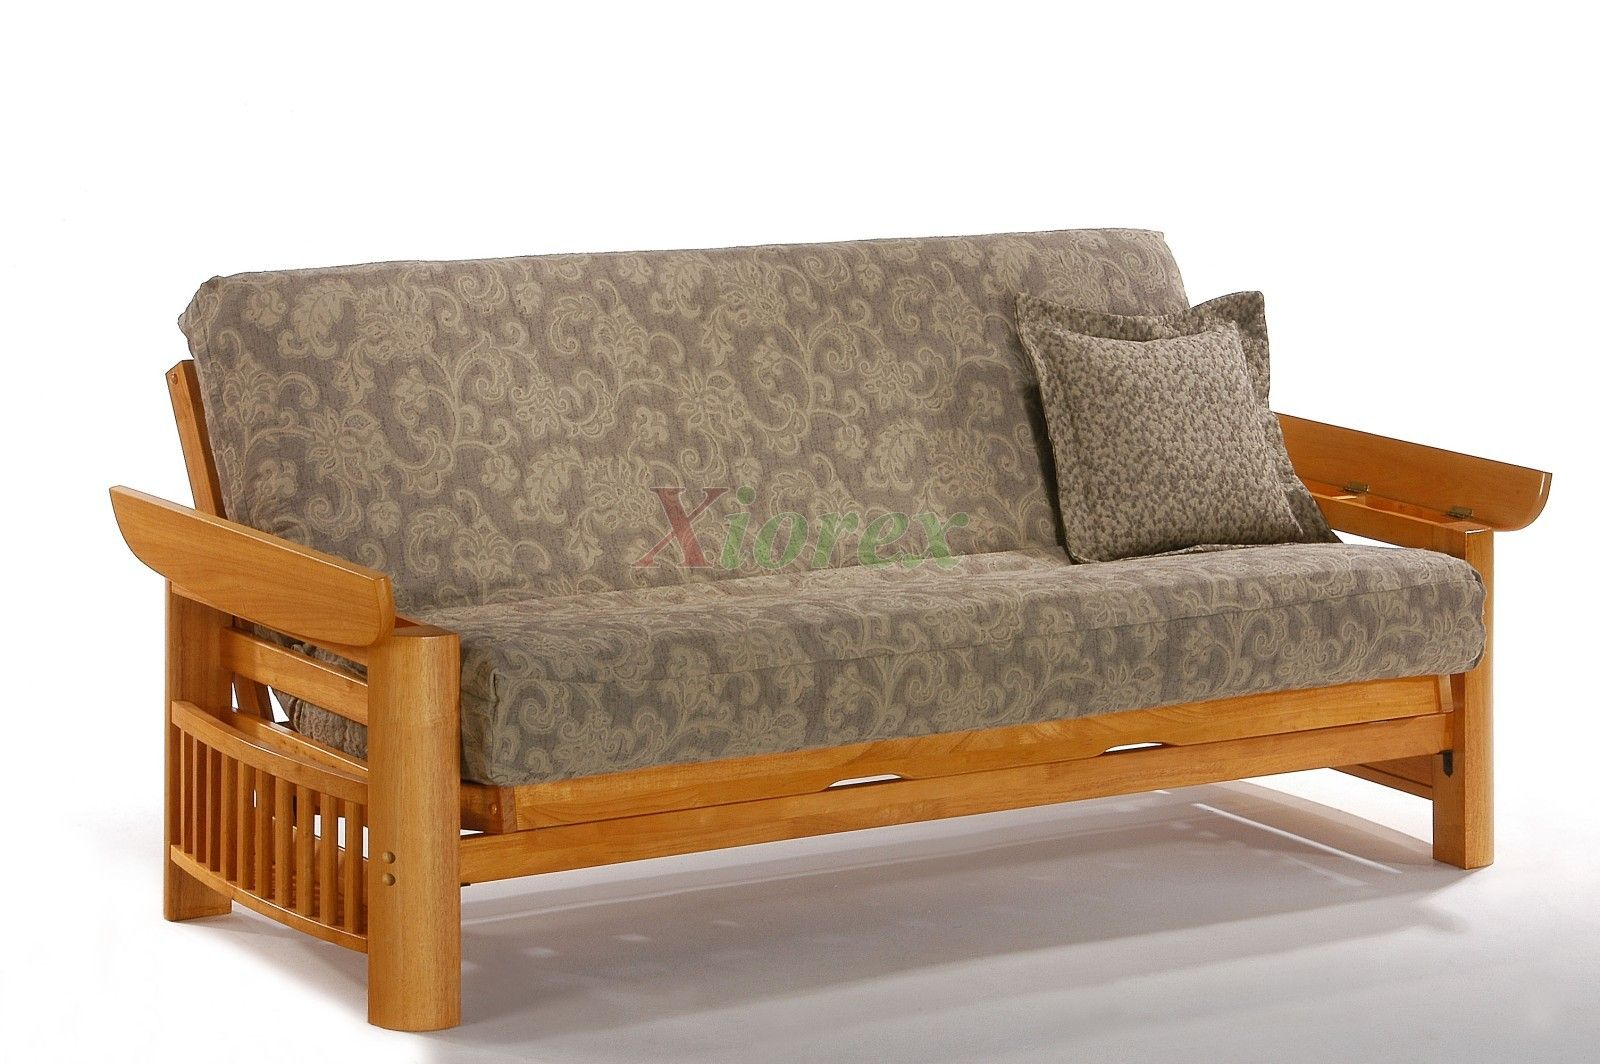 Futon Sofabed Night and Day Portofino Futon Honey Oak